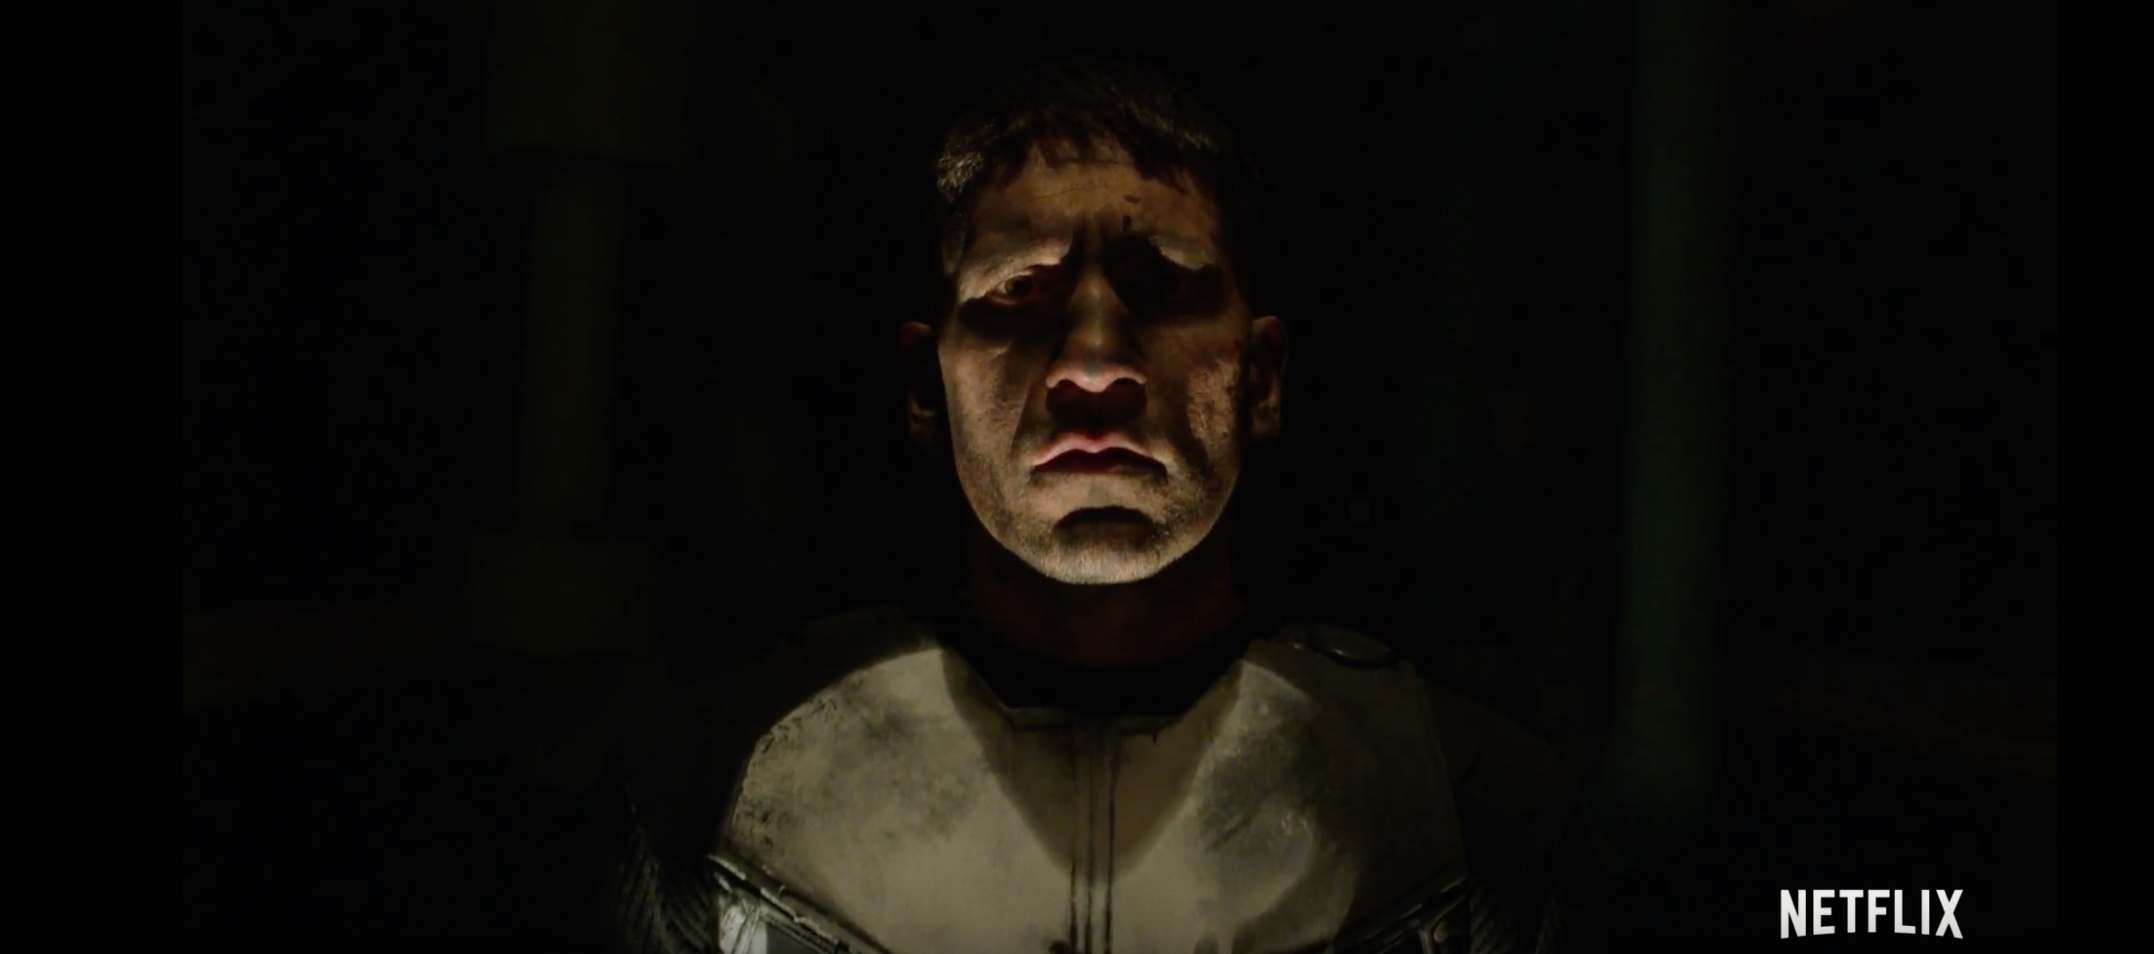 With a New Trailer, 'The Punisher' Premiere Date Has Finally Been Revealed